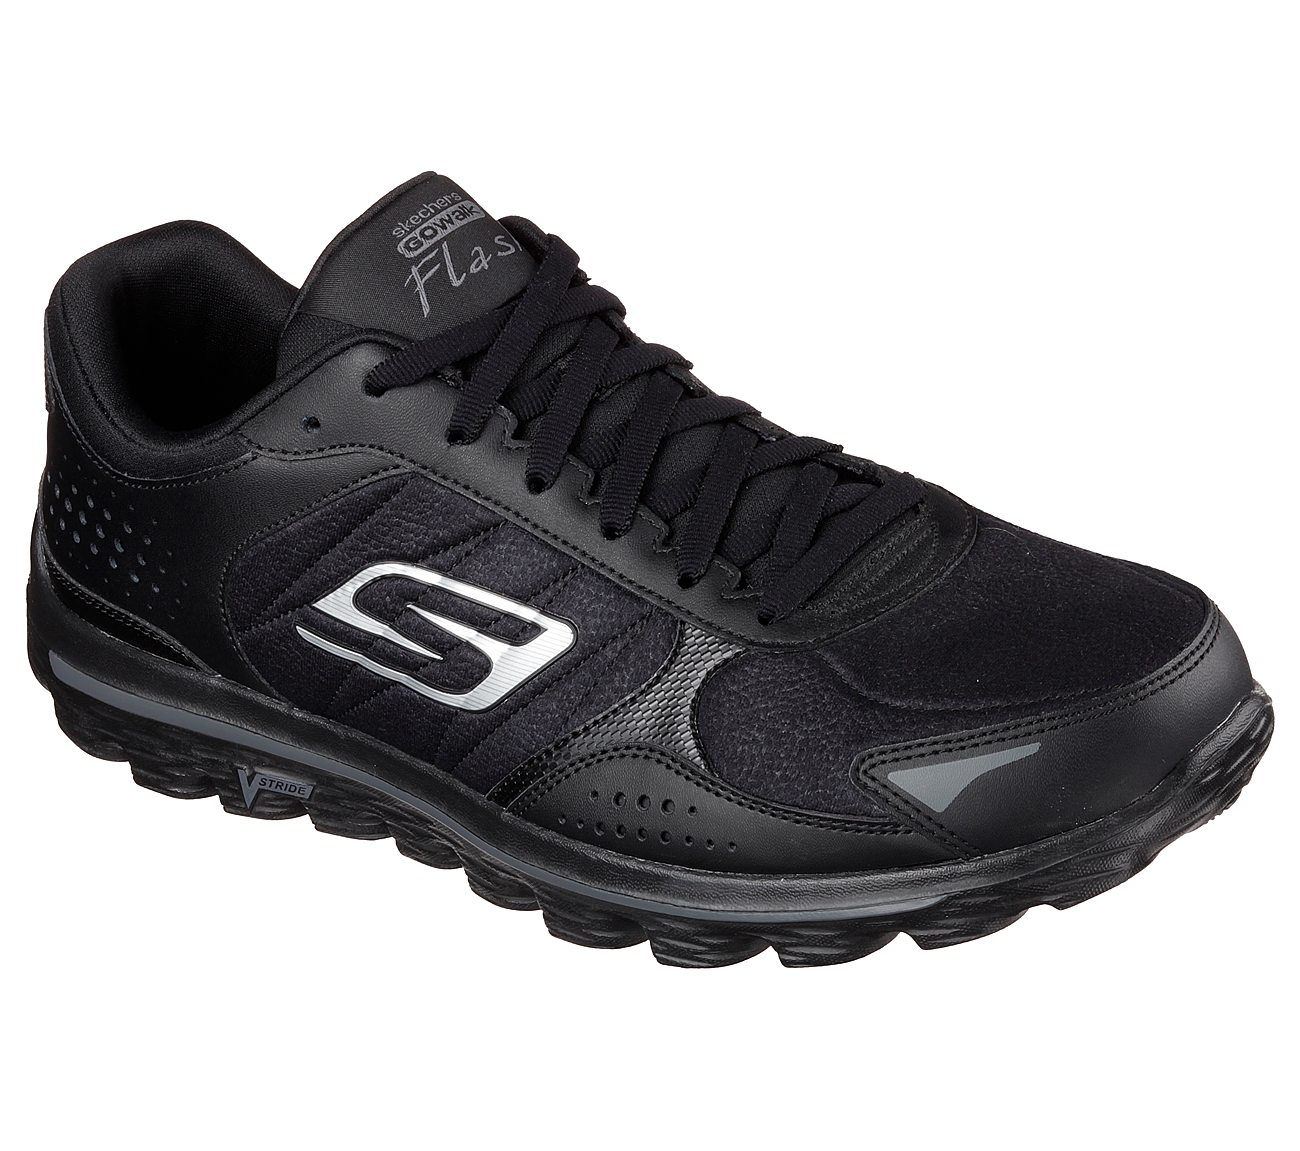 Flash LT Skechers Performance Shoes